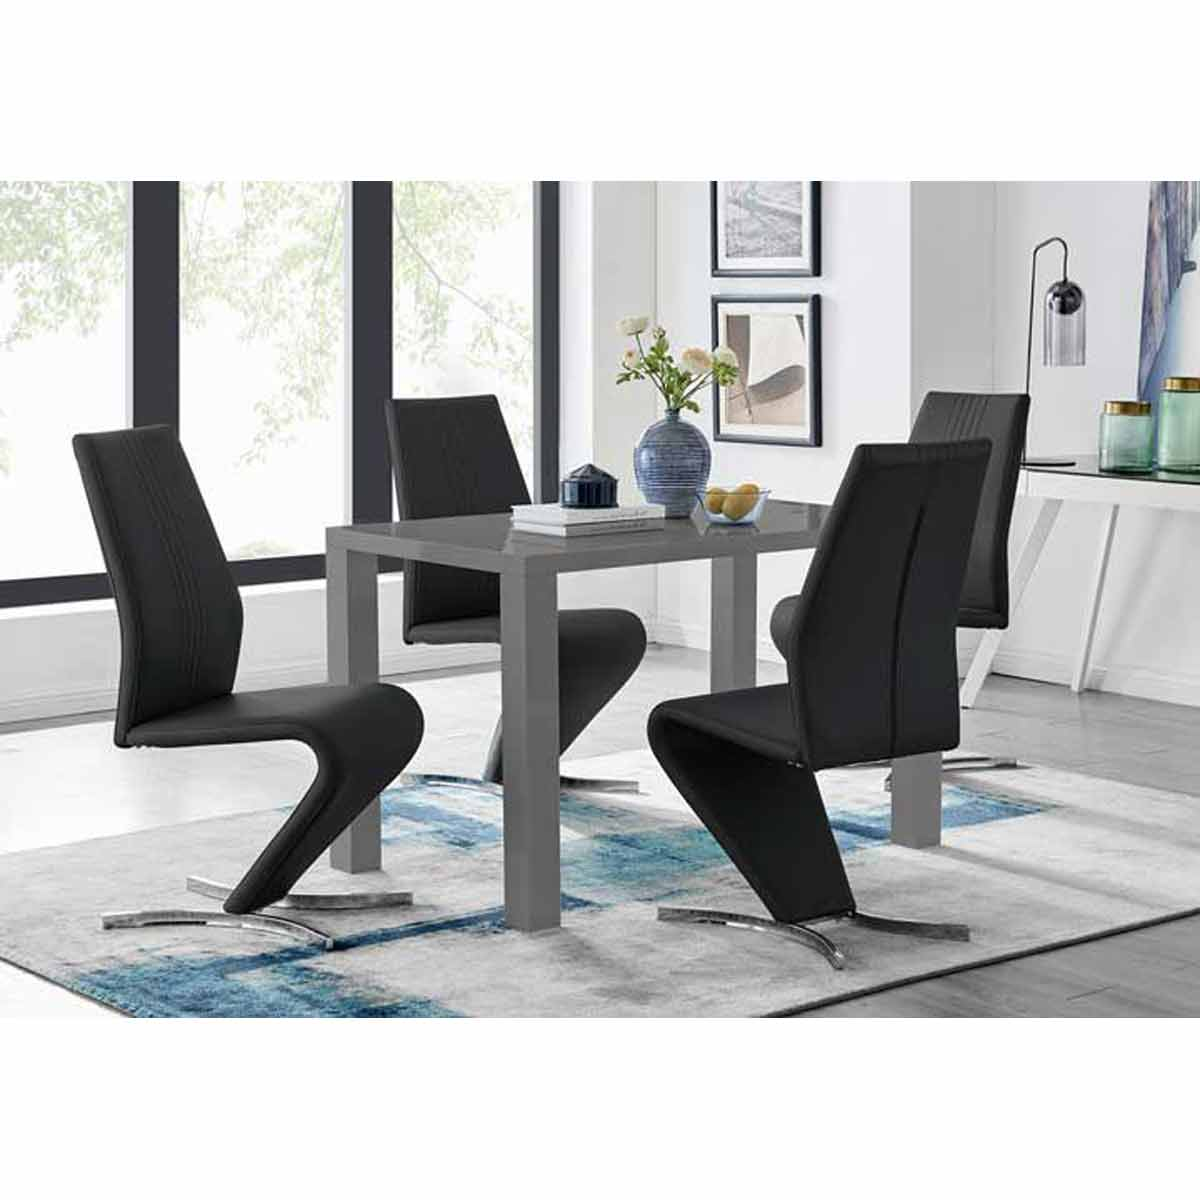 Furniture Box Pivero Grey High Gloss Dining Table and 4 Luxury Black Willow Chairs Set